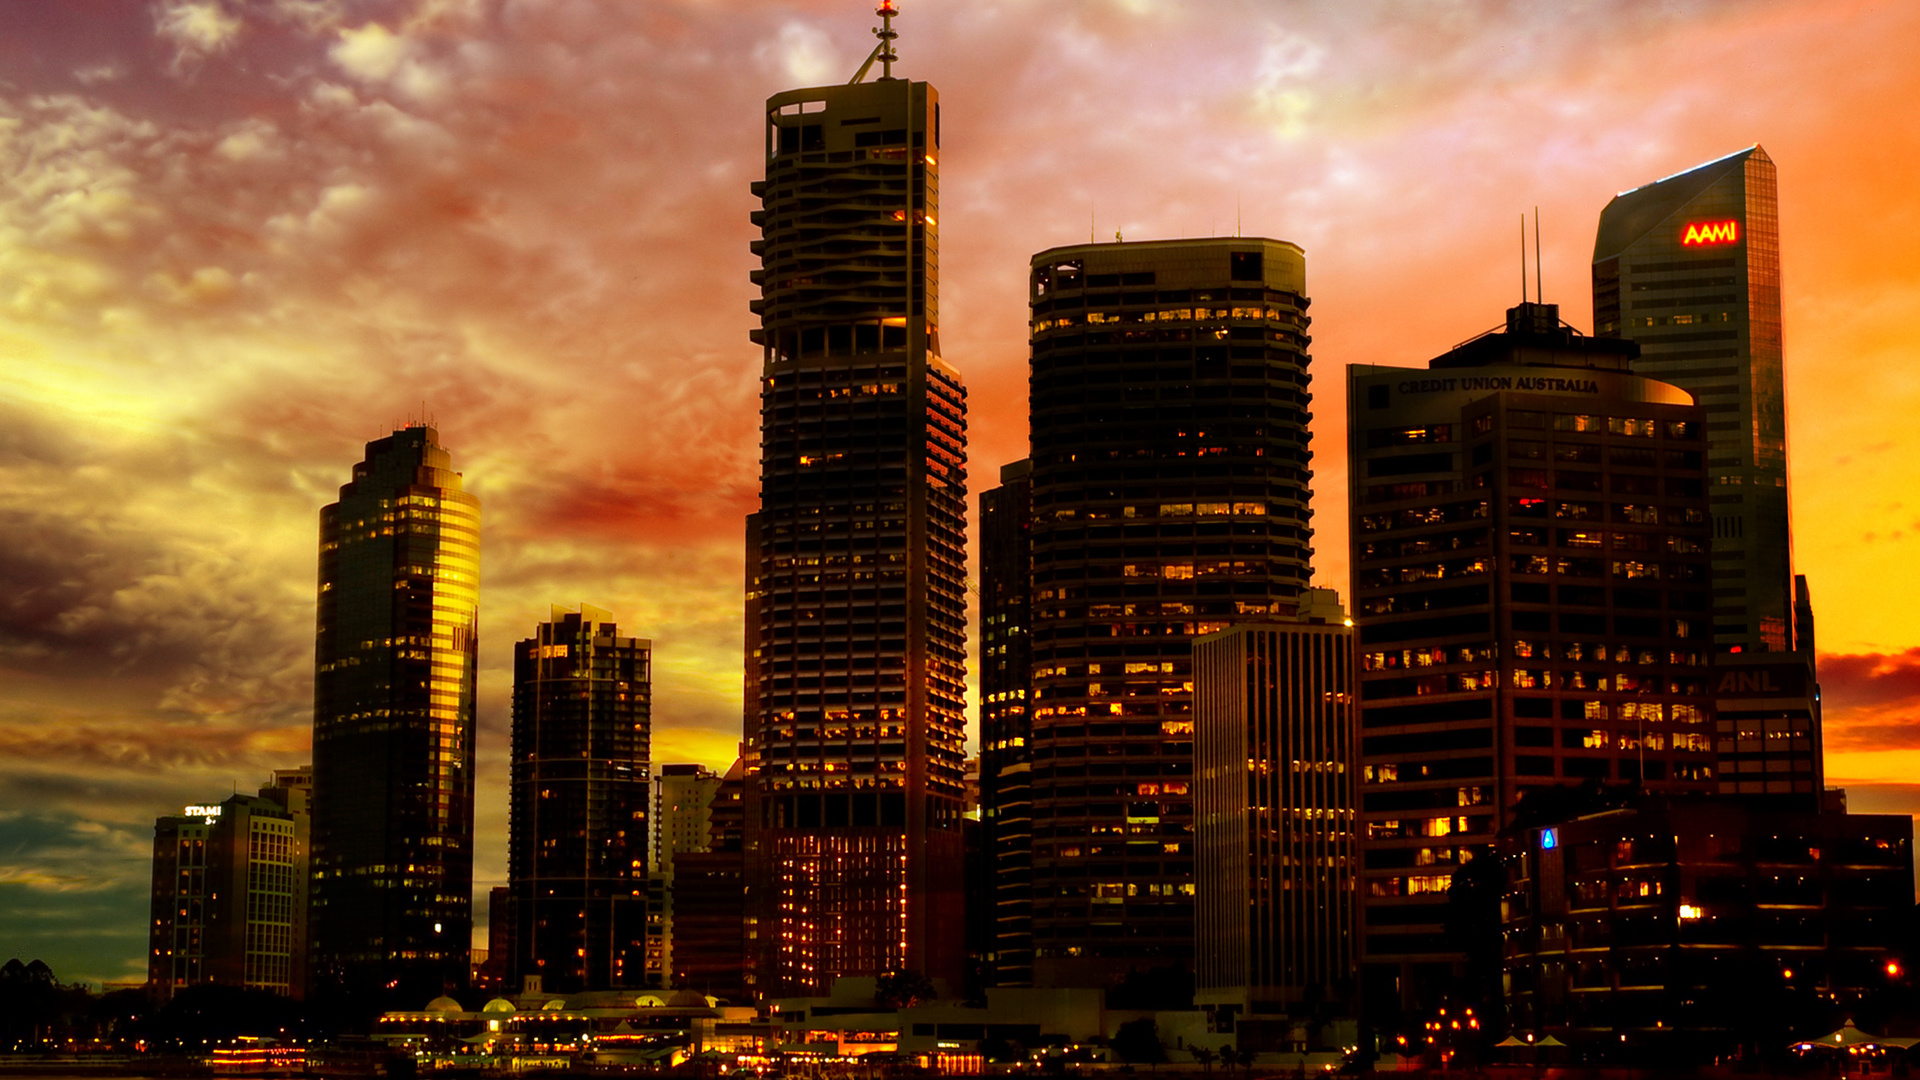 City Backgrounds wallpaper Sunset City Backgrounds hd wallpaper 1920x1080